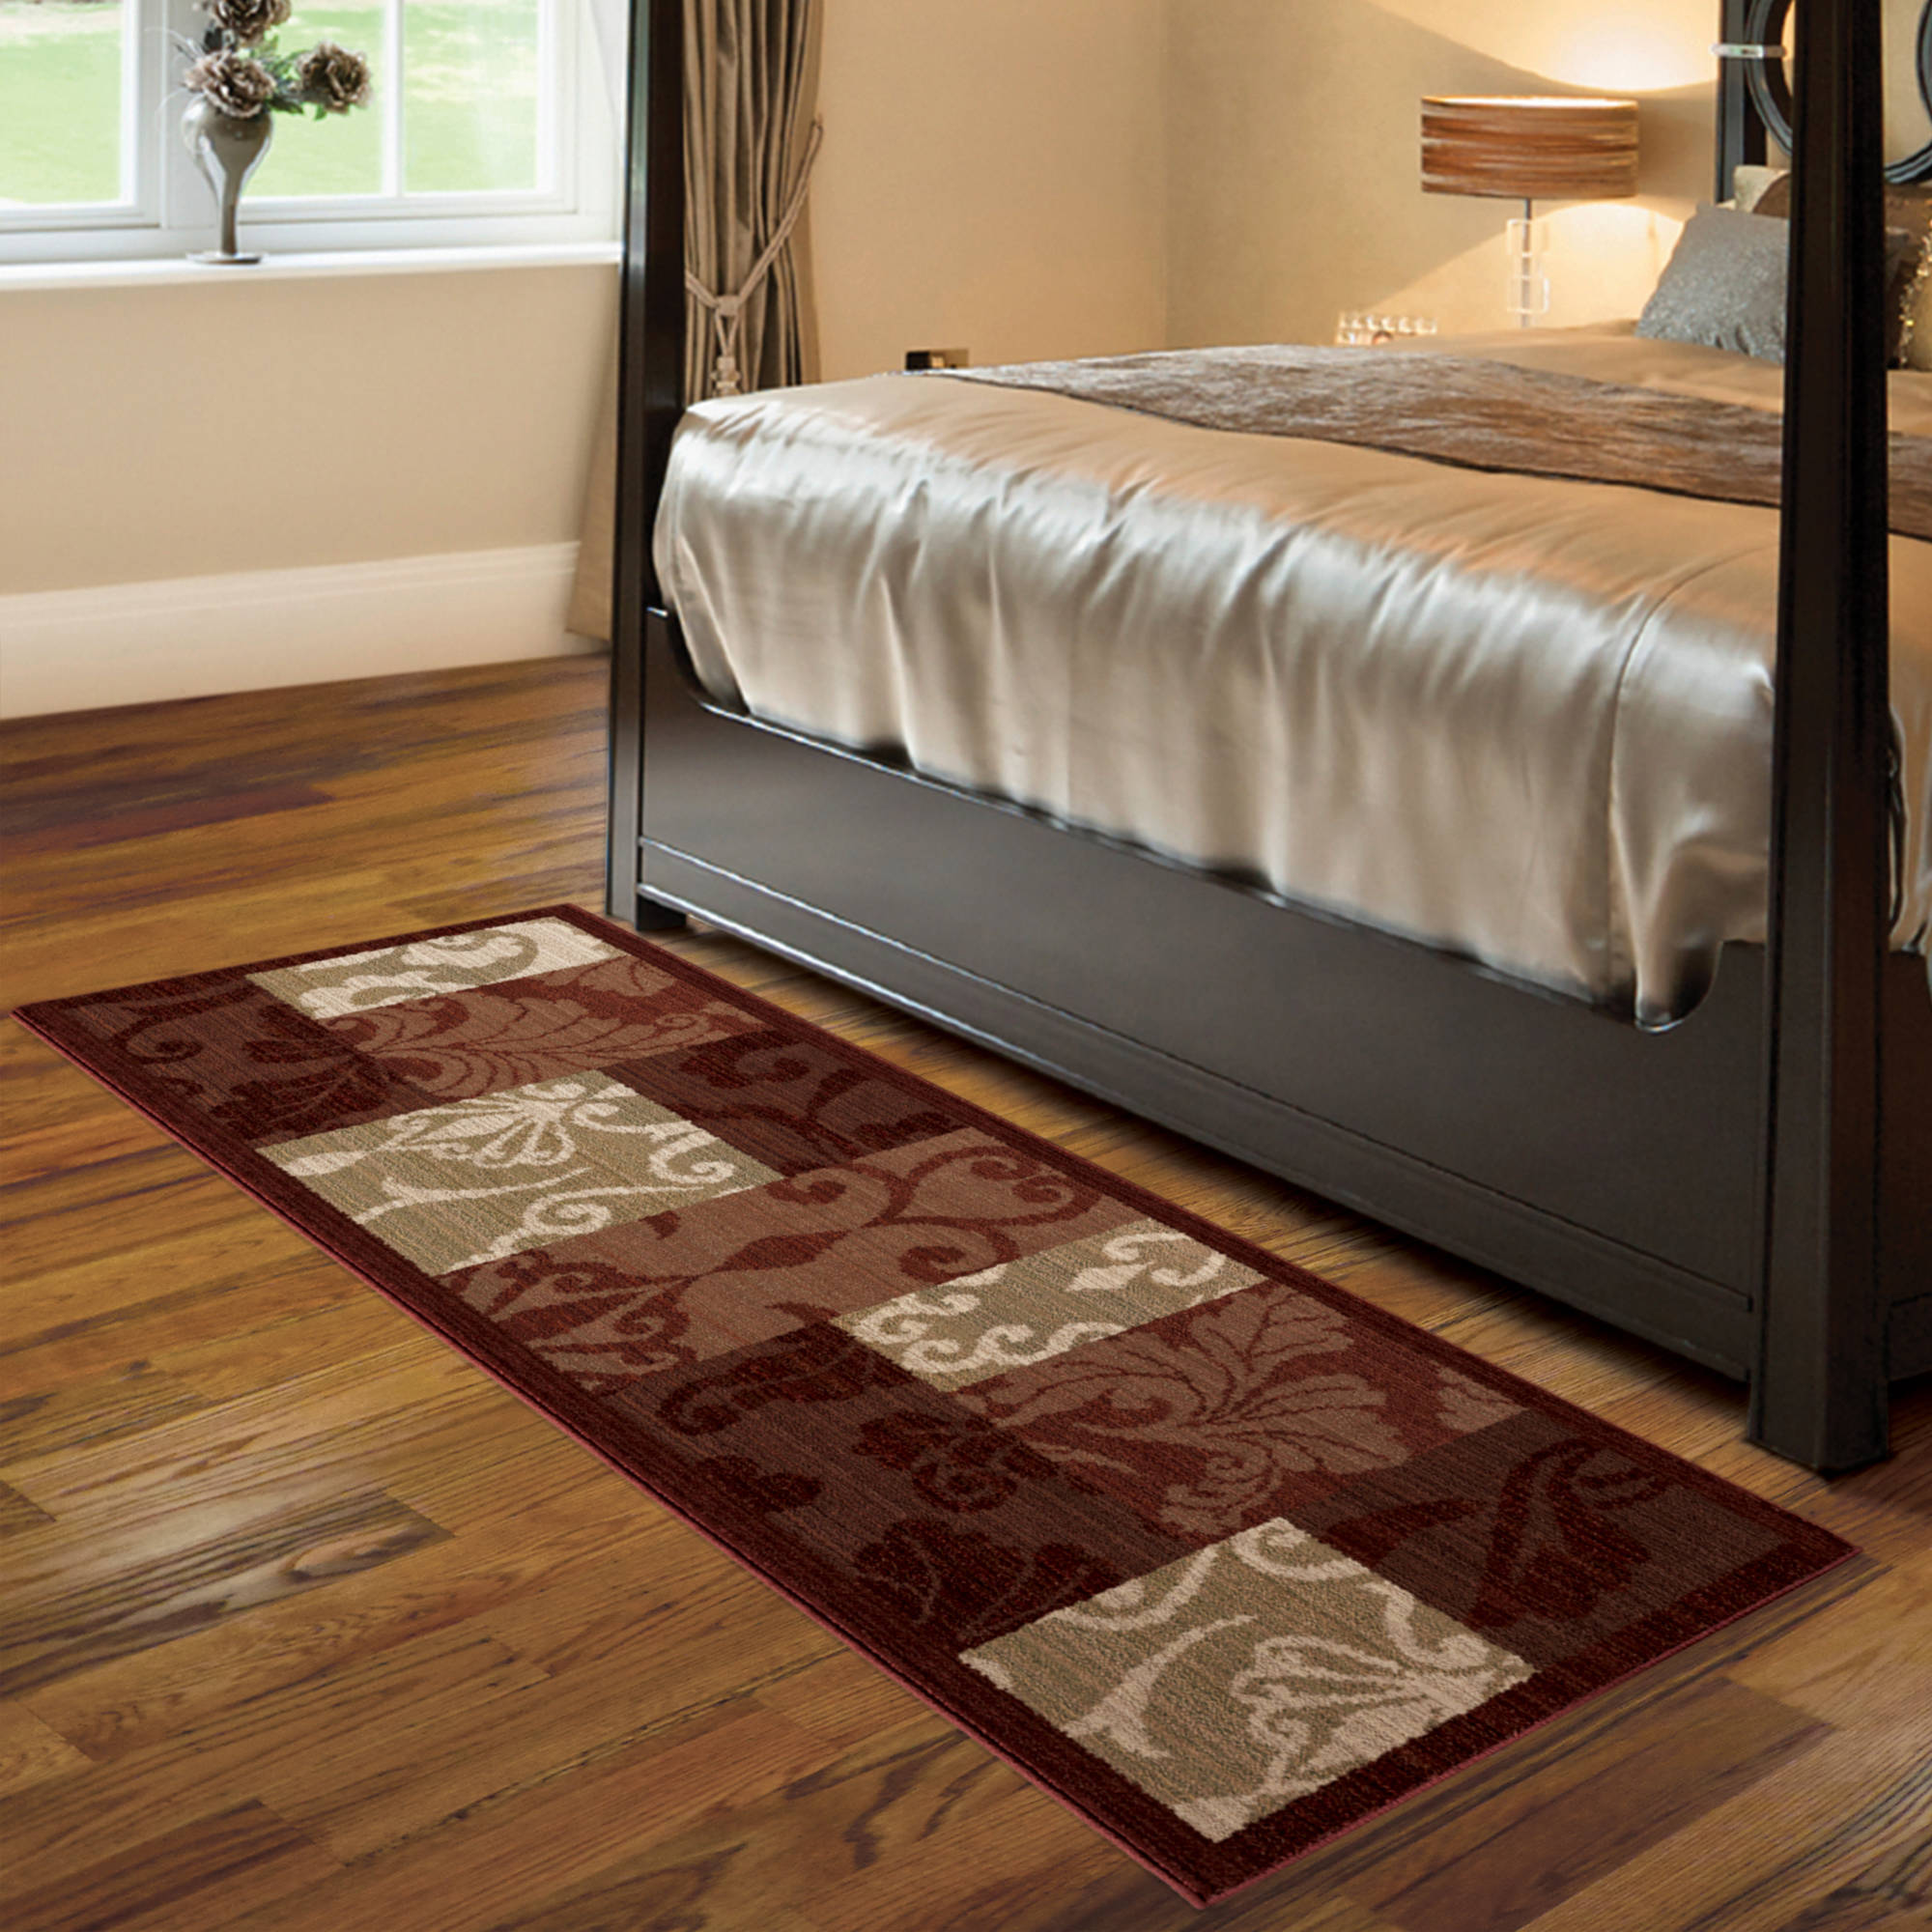 better homes and garden rugs. better homes and gardens scroll patchwork area rug or runner - walmart.com garden rugs c